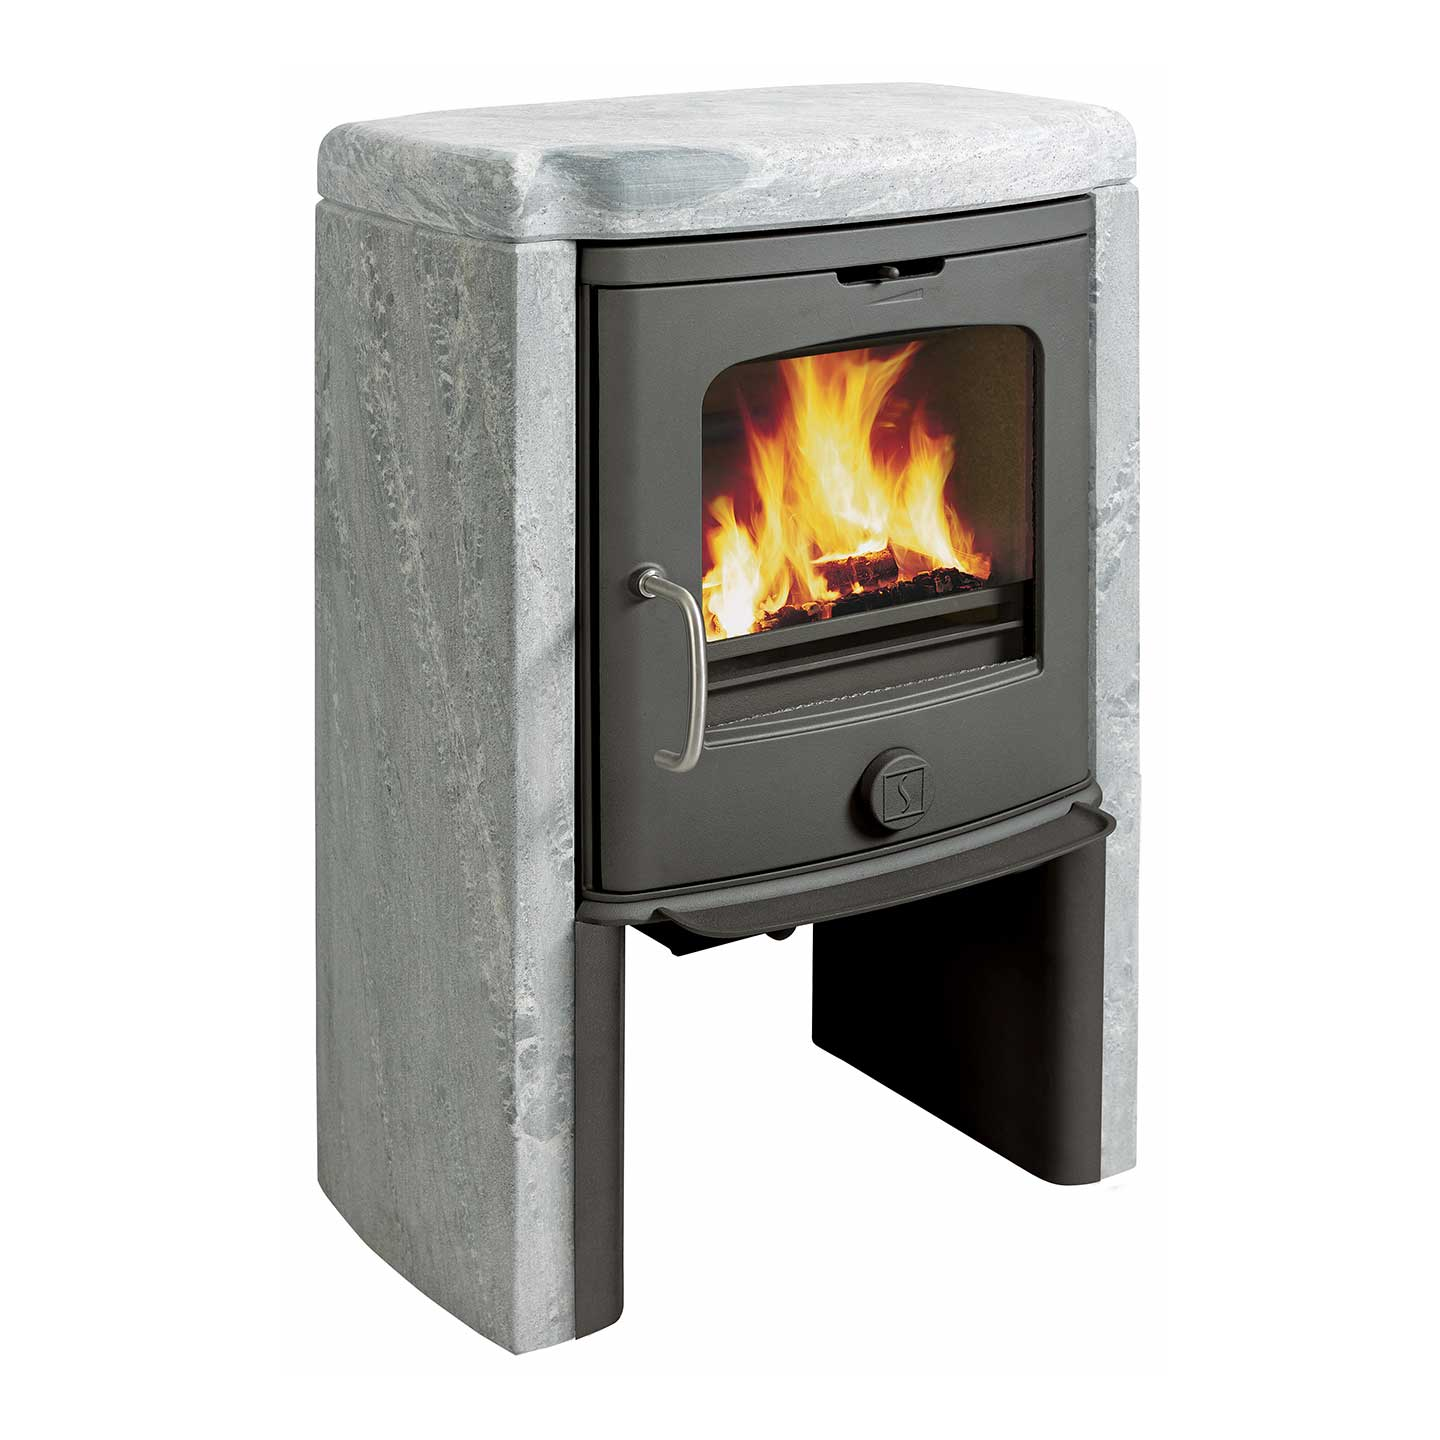 Scan Anderson 4-5 Multi Fuel & Wood Burning Soapstone